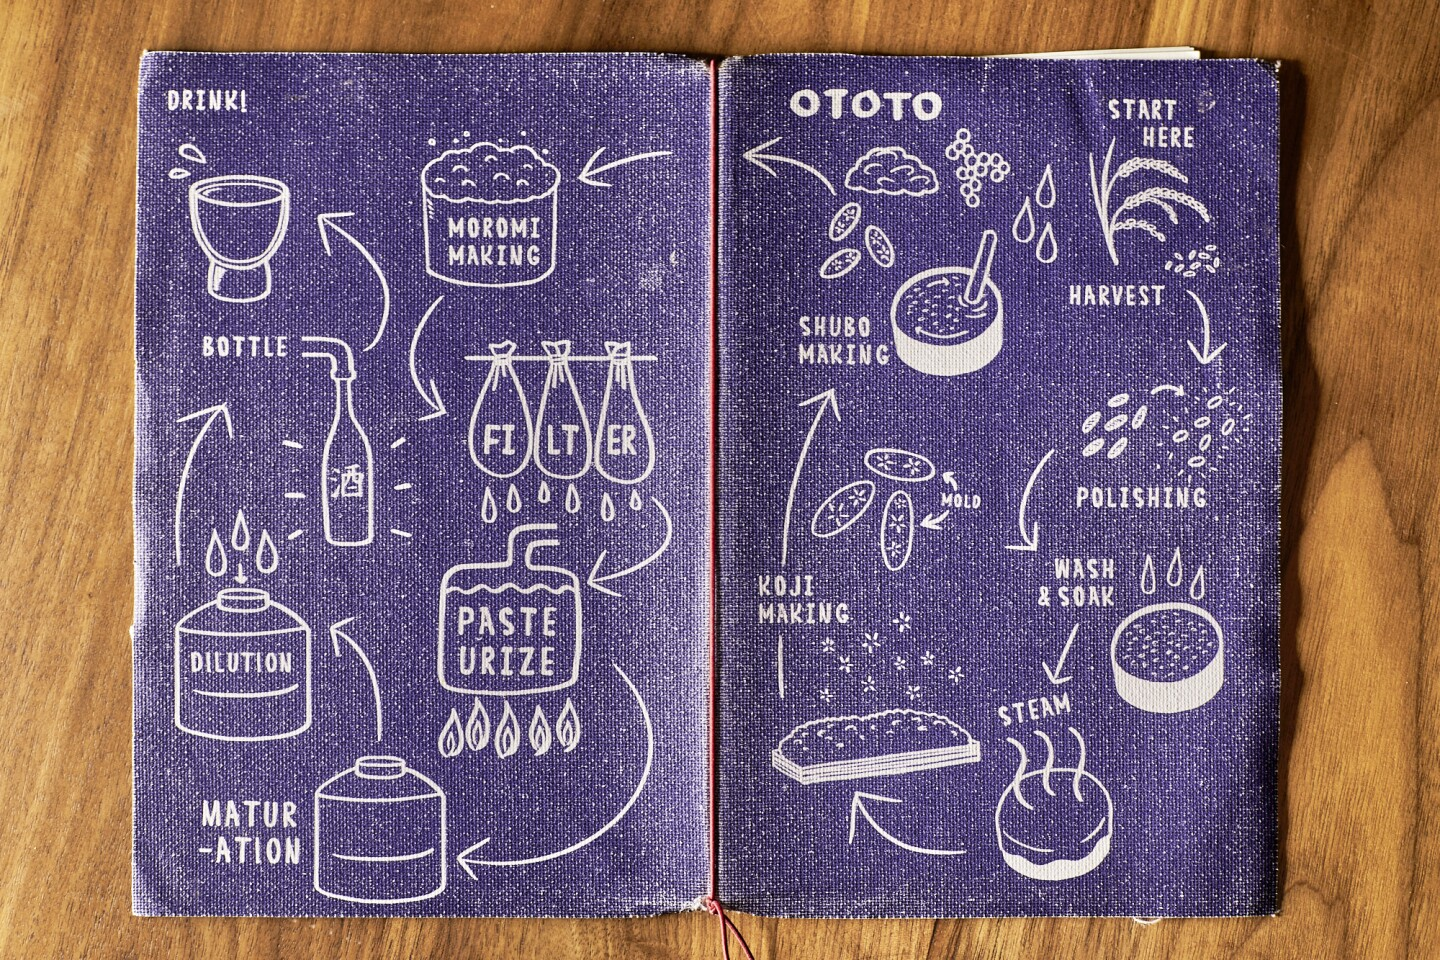 Ototo's menu cover, which illustrates the process of sake brewing from start to finish.